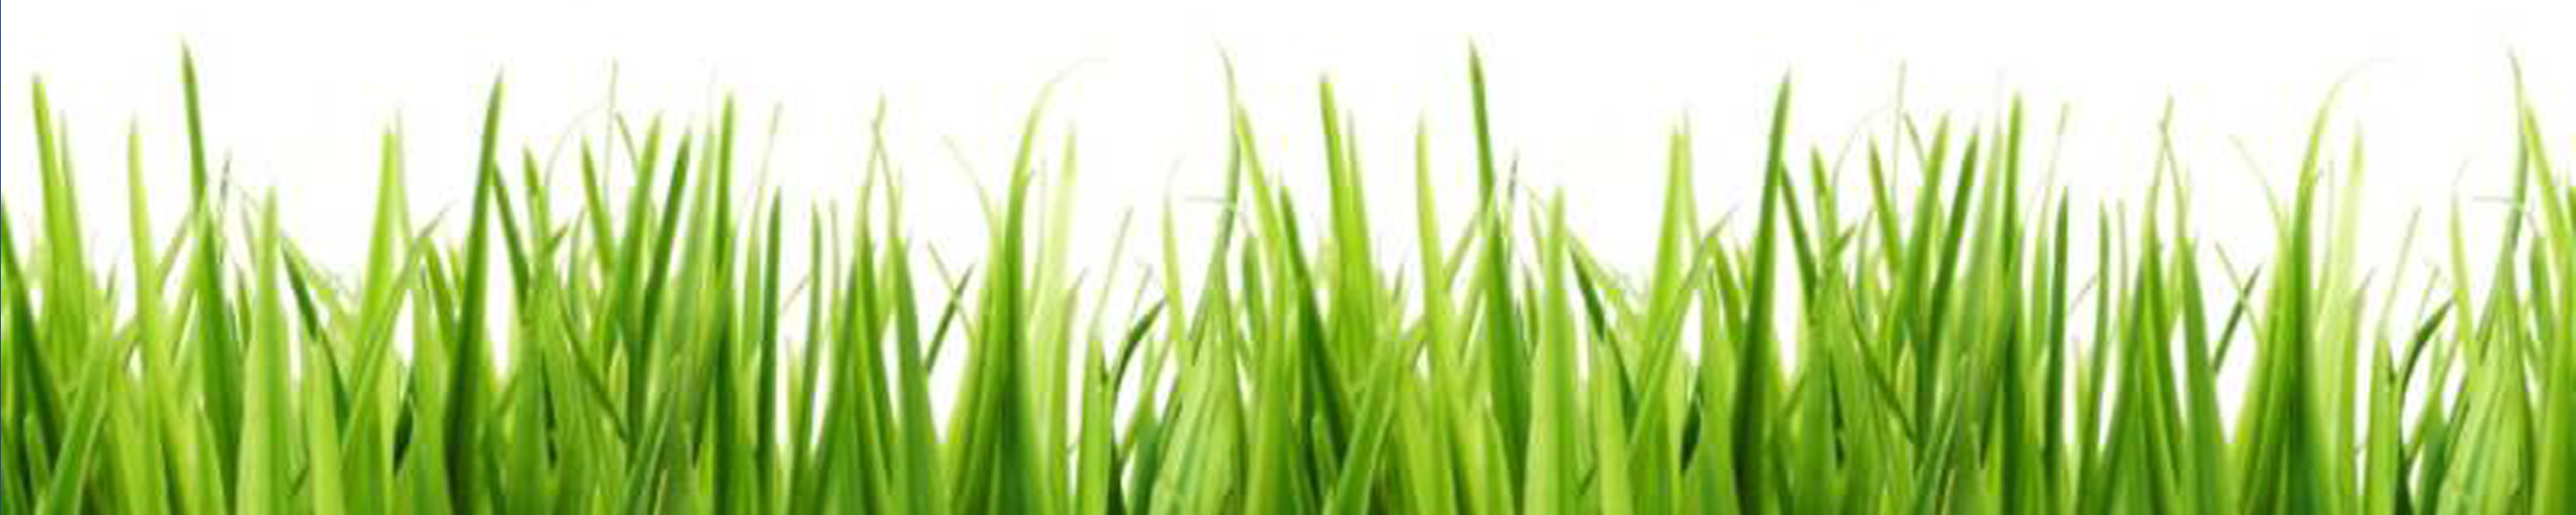 Grass clipart #12, Download drawings